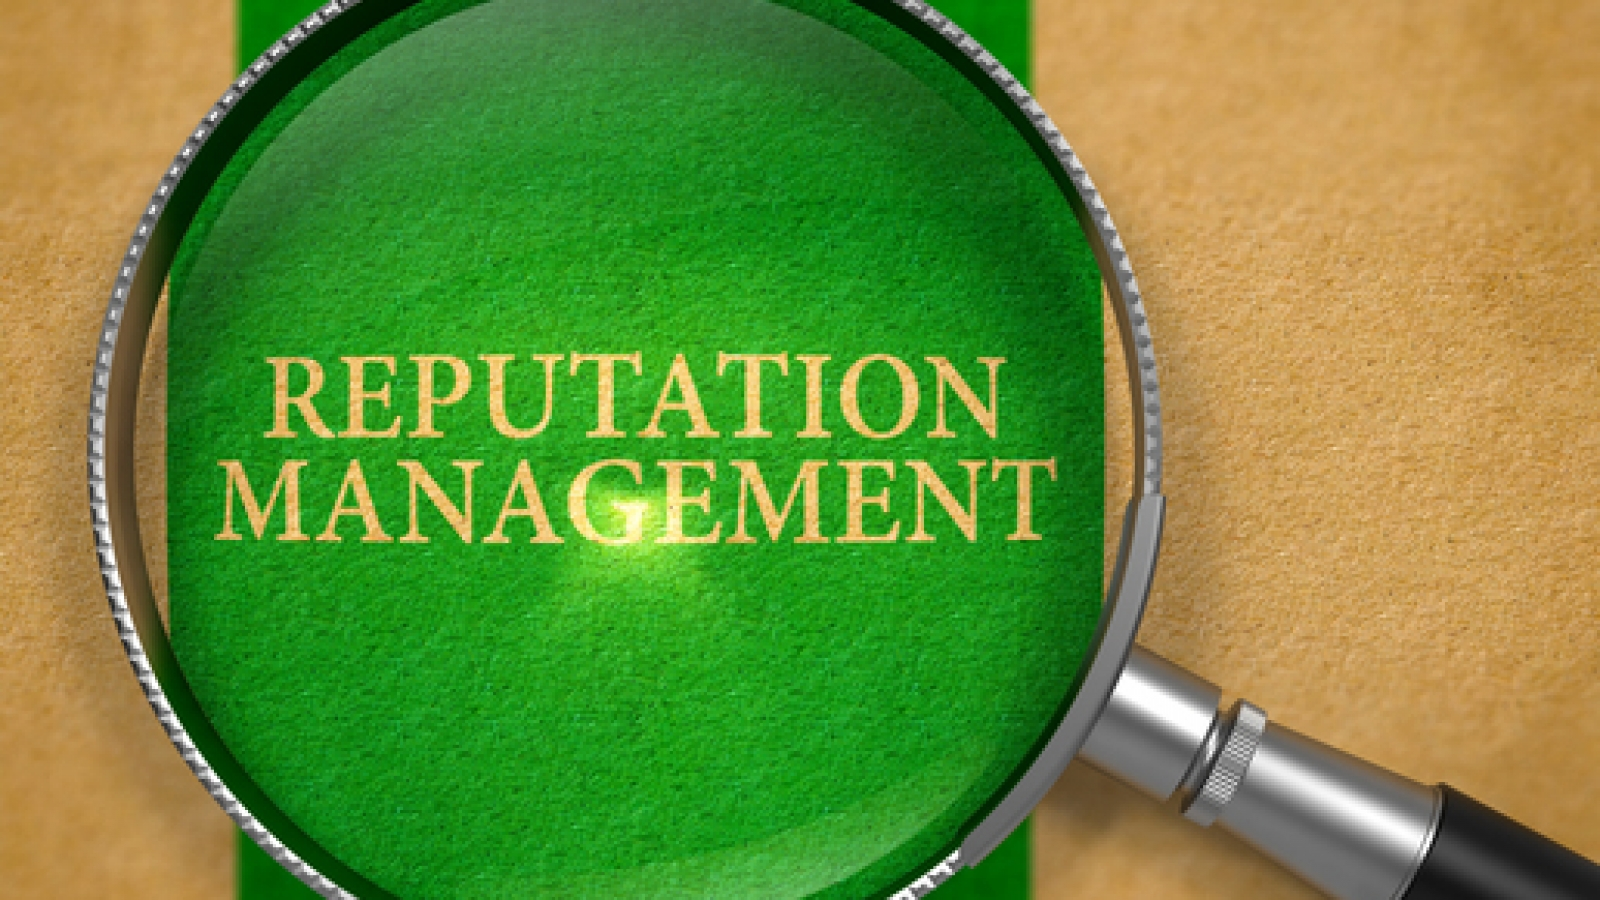 Reputation Management Concept through Magnifier on Old Paper with Green Vertical Line Background. 3D Render.